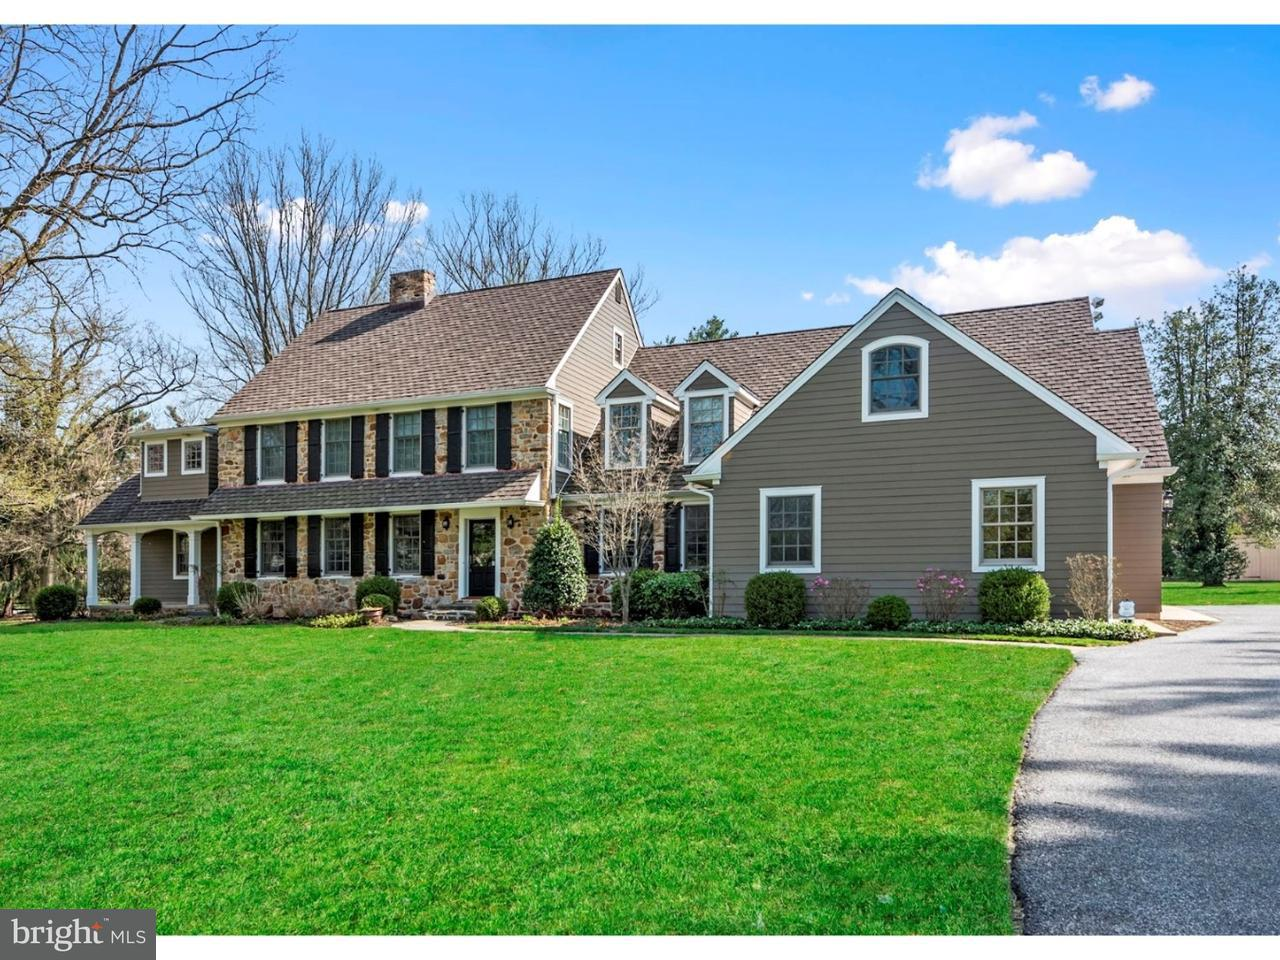 Single Family Home for Rent at 3 BROADACRES Court Moorestown, New Jersey 08057 United States